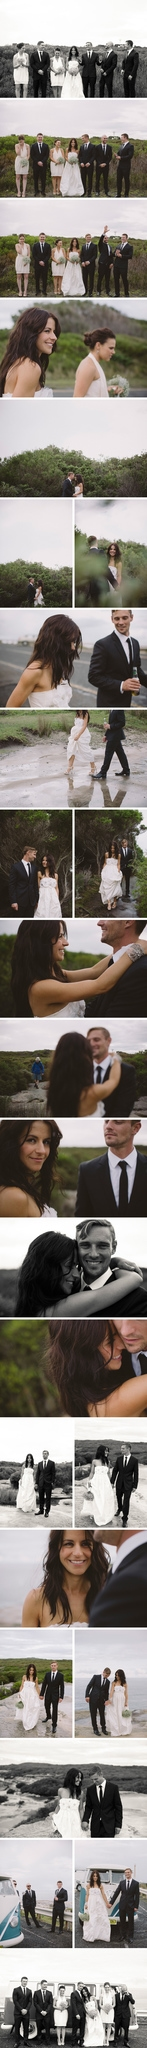 Relaxed Cronulla Beach Wedding Photos